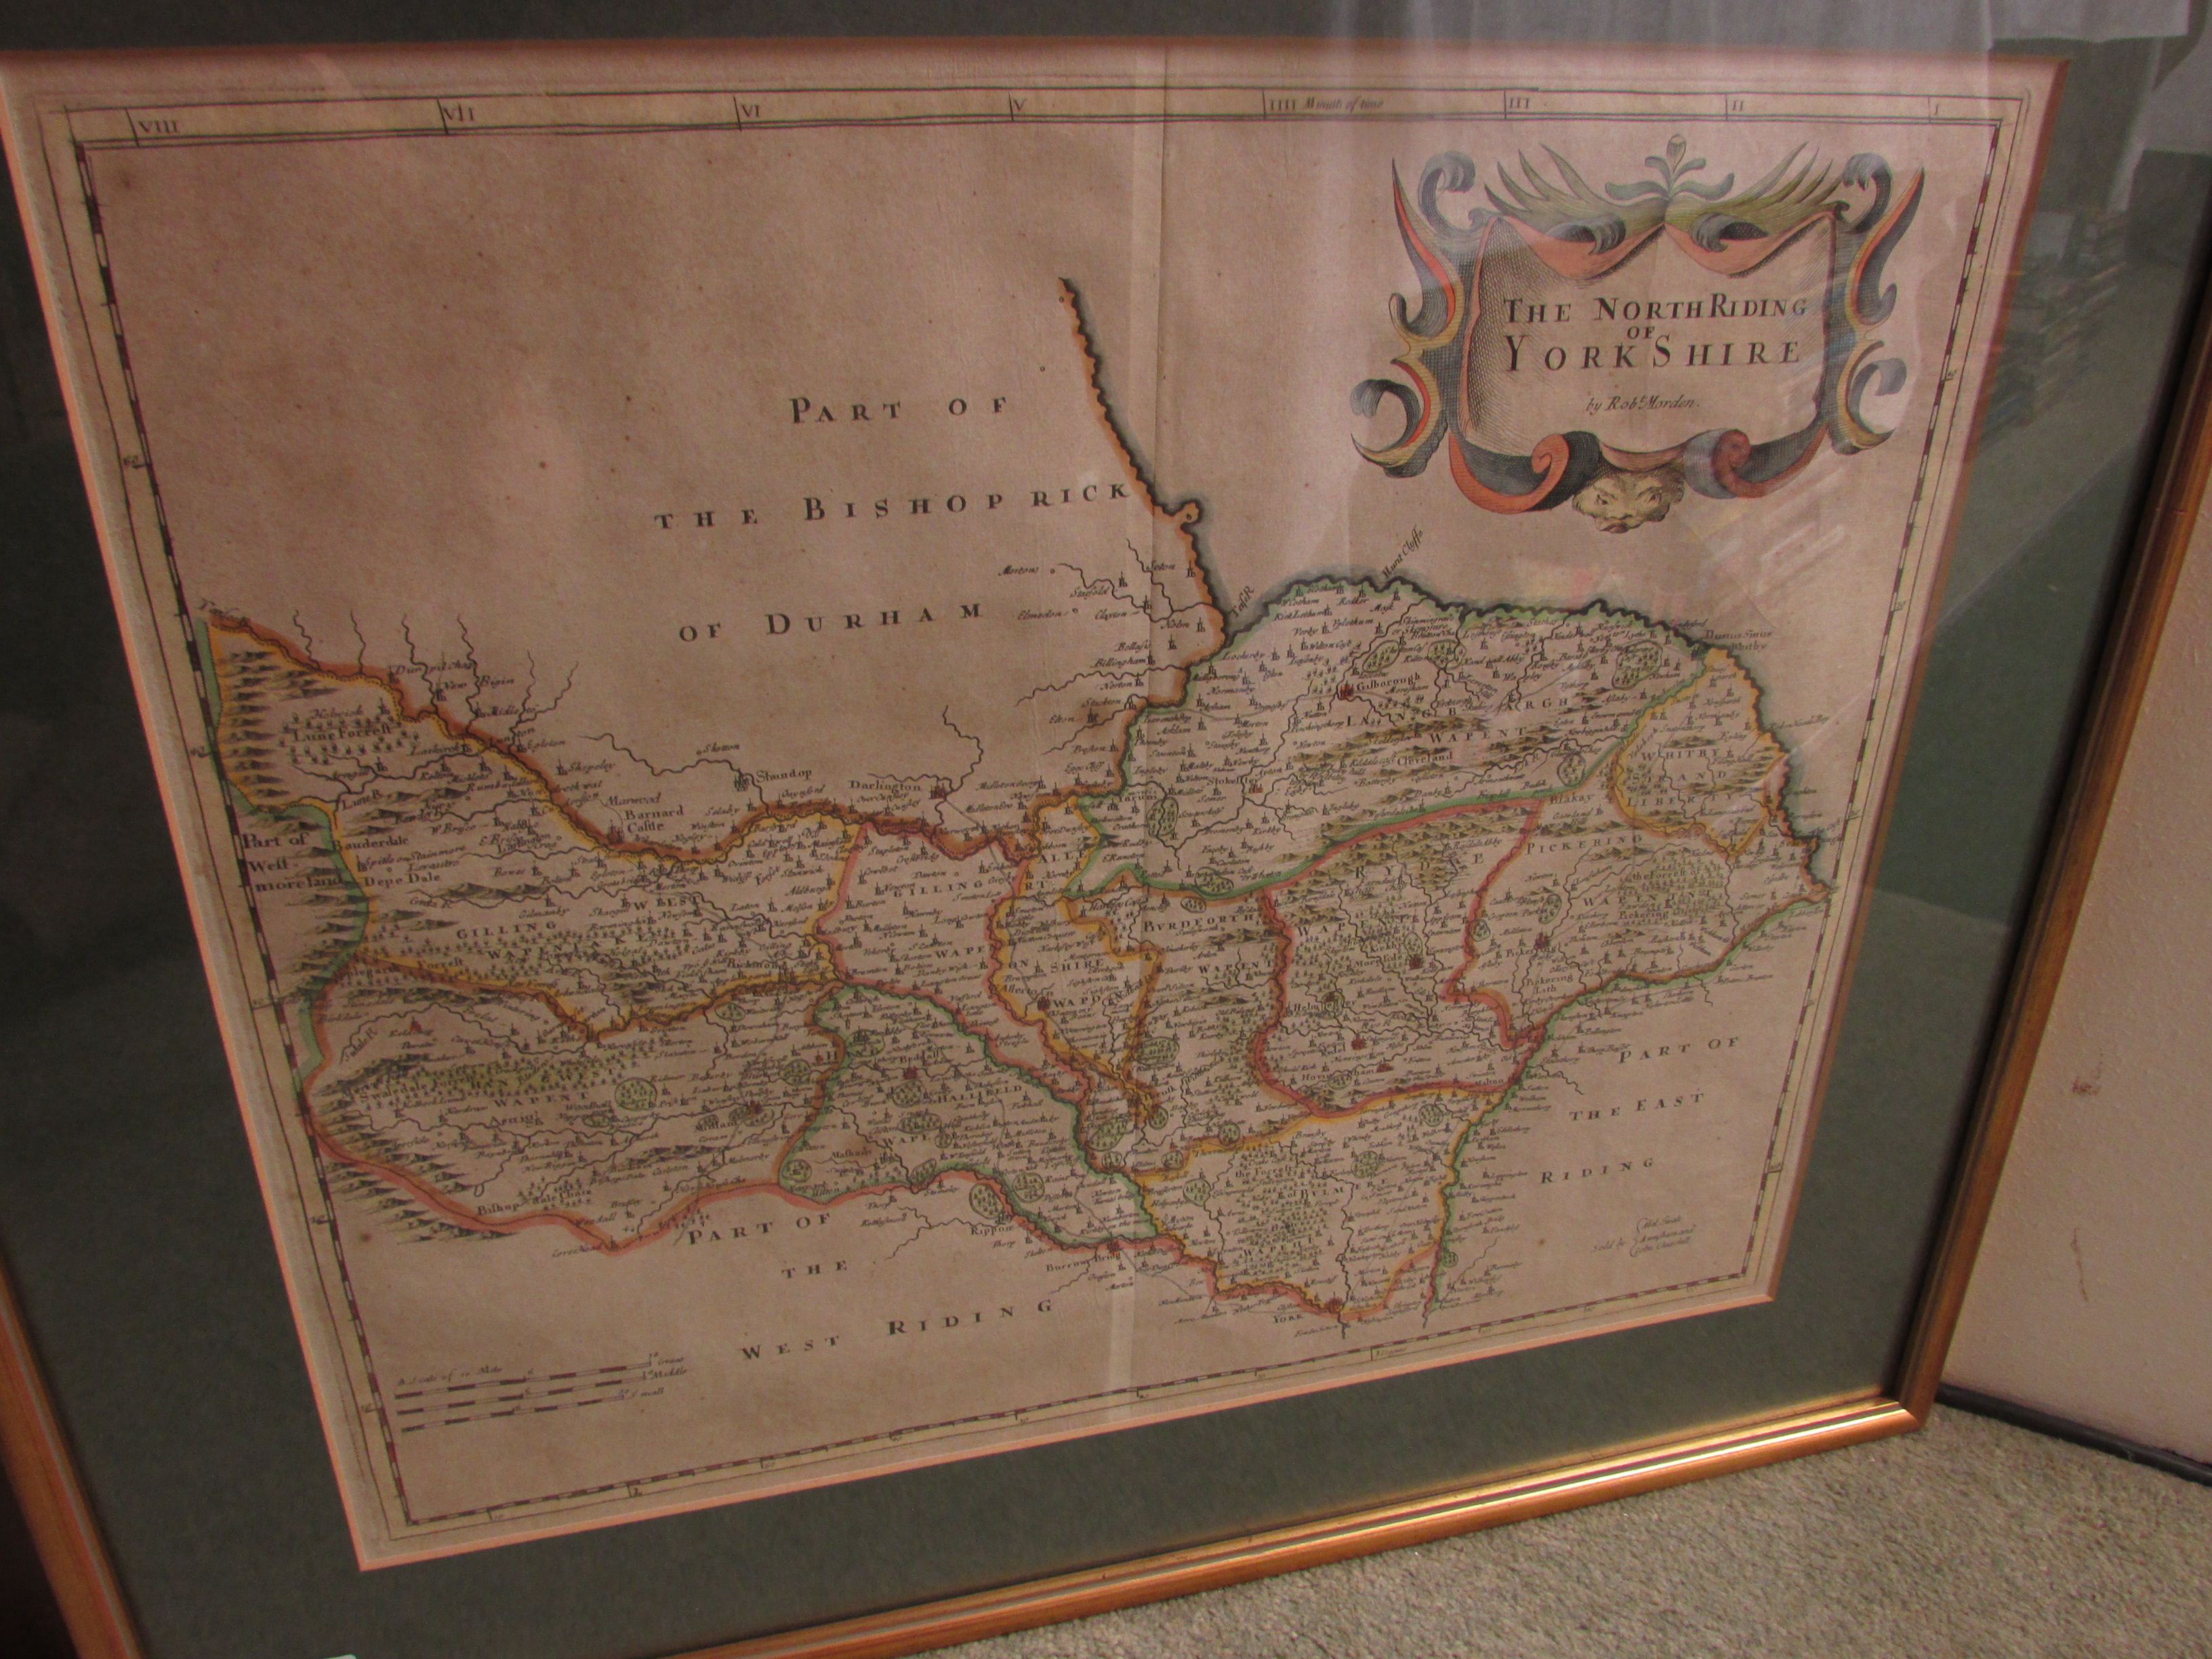 Lot 196 - The North Riding of Yorkshire - hand coloured map after Robert Morden, sold by Abel Swale Awnsham